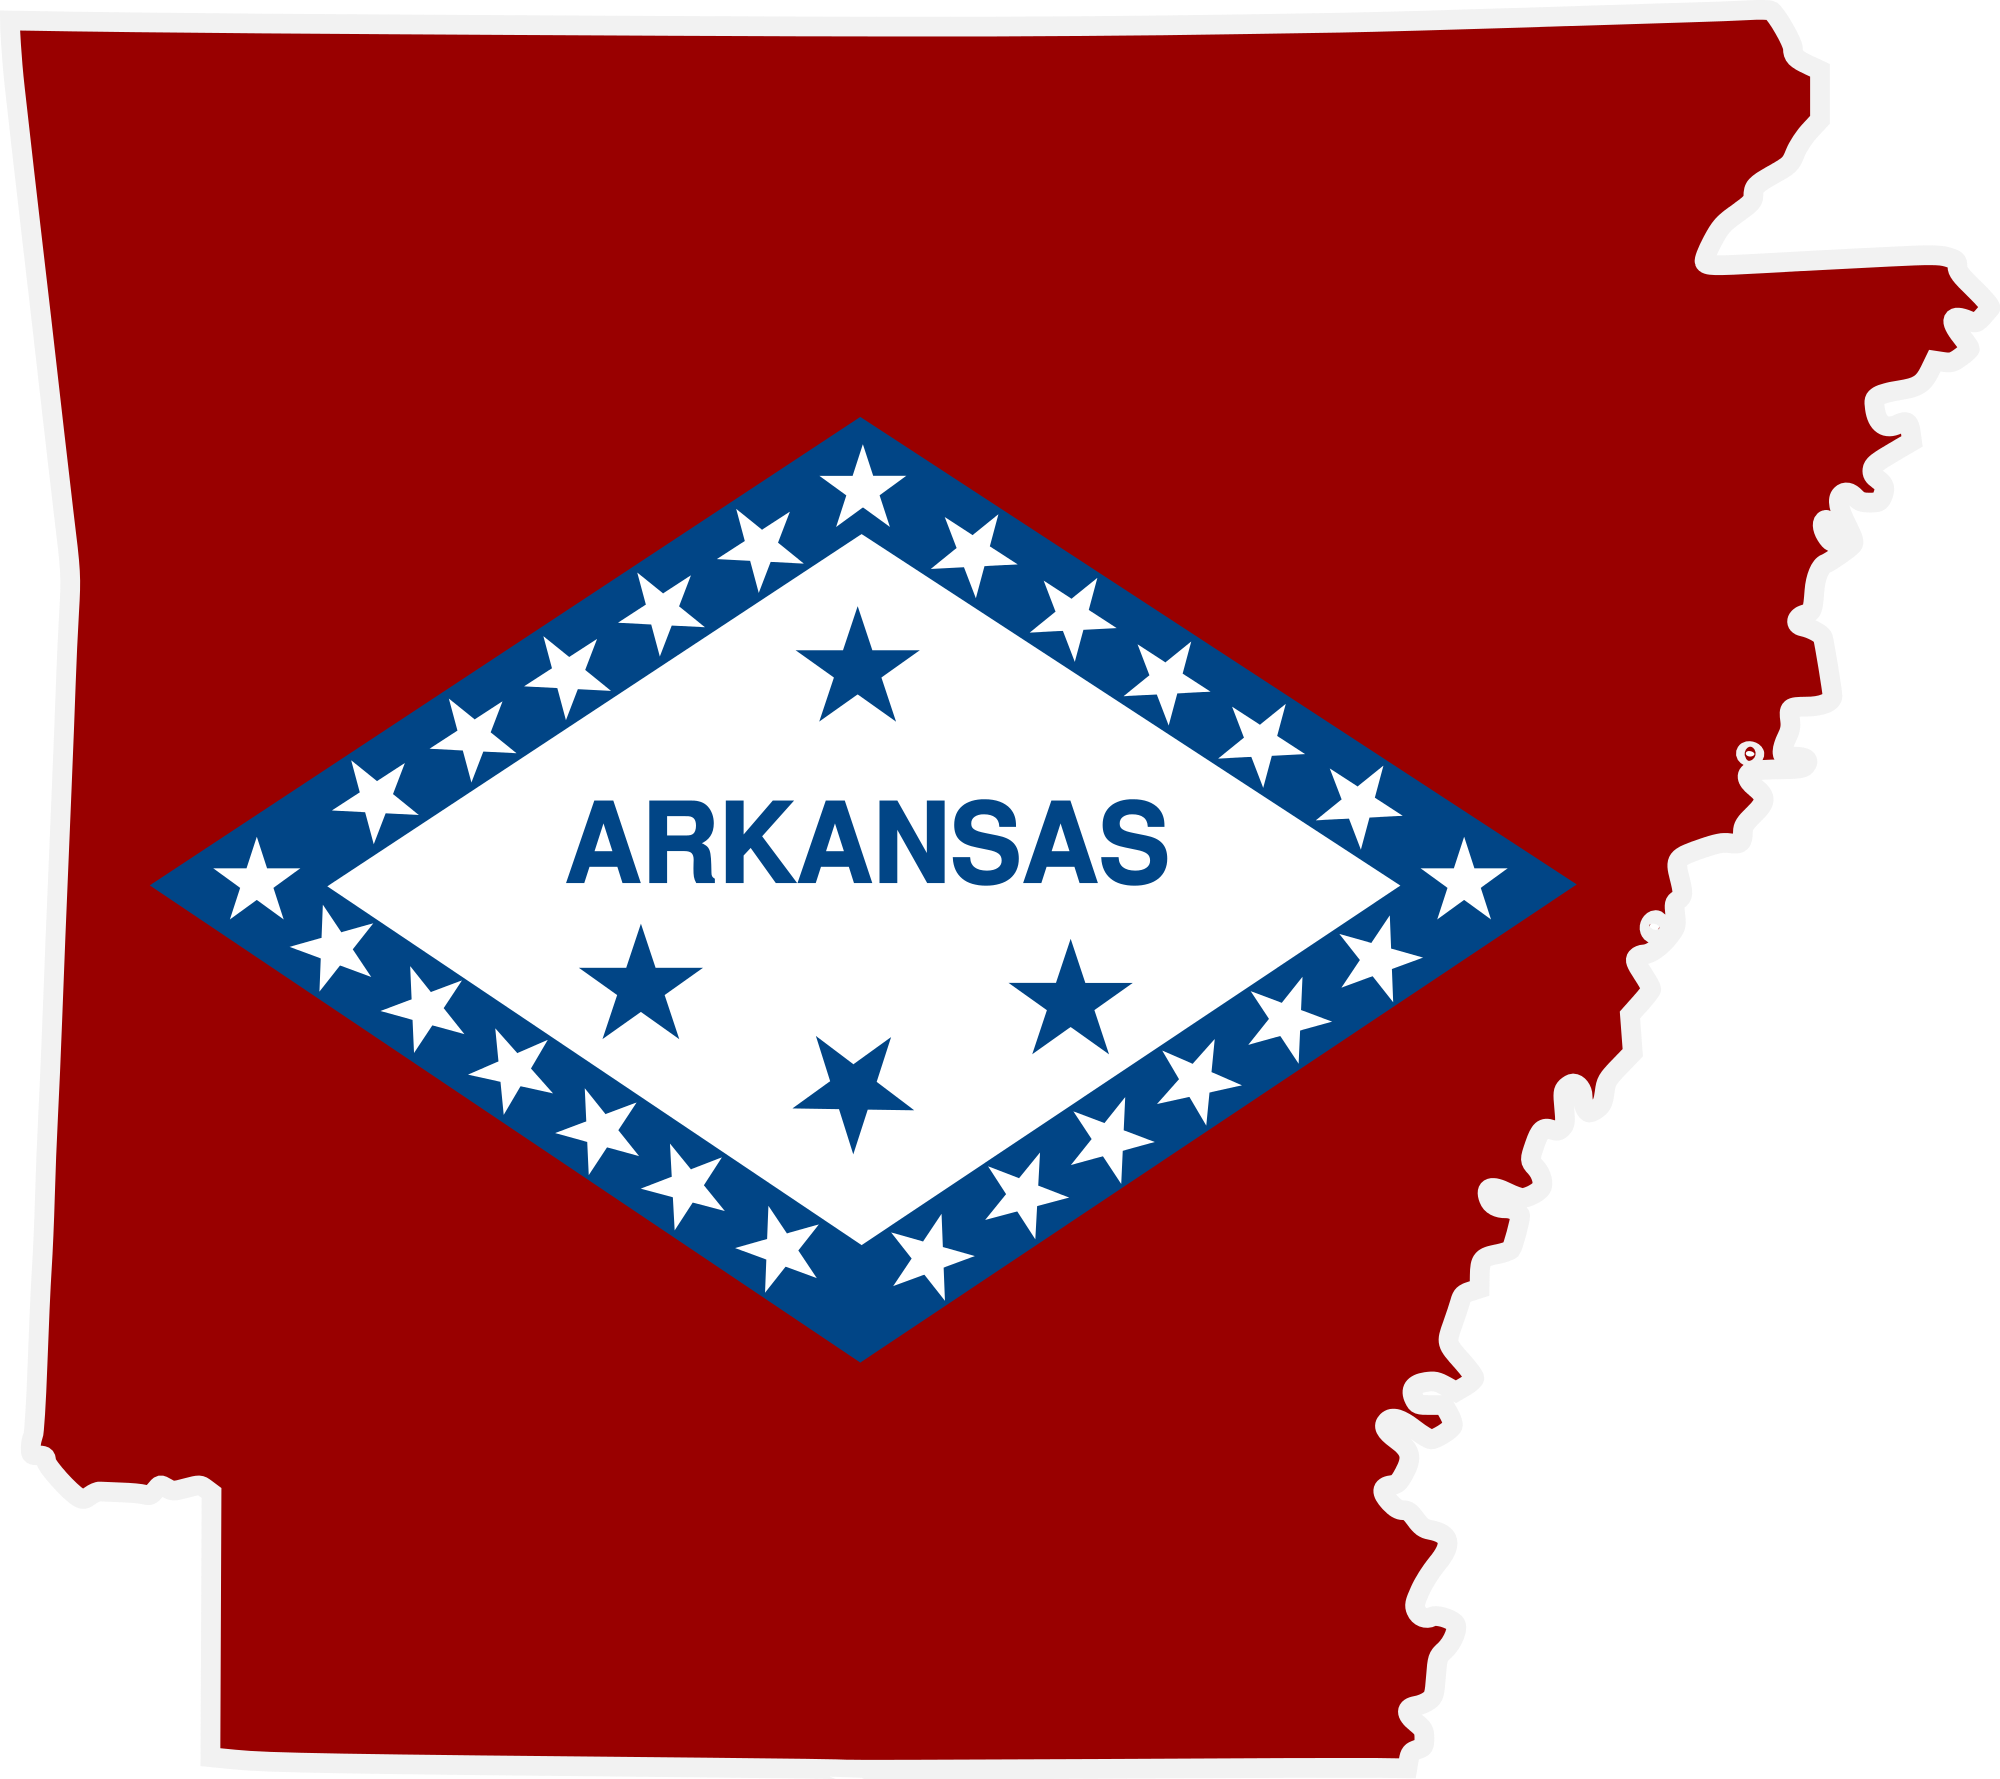 Arkansas svg shape. File wikiproject wikimedia commons